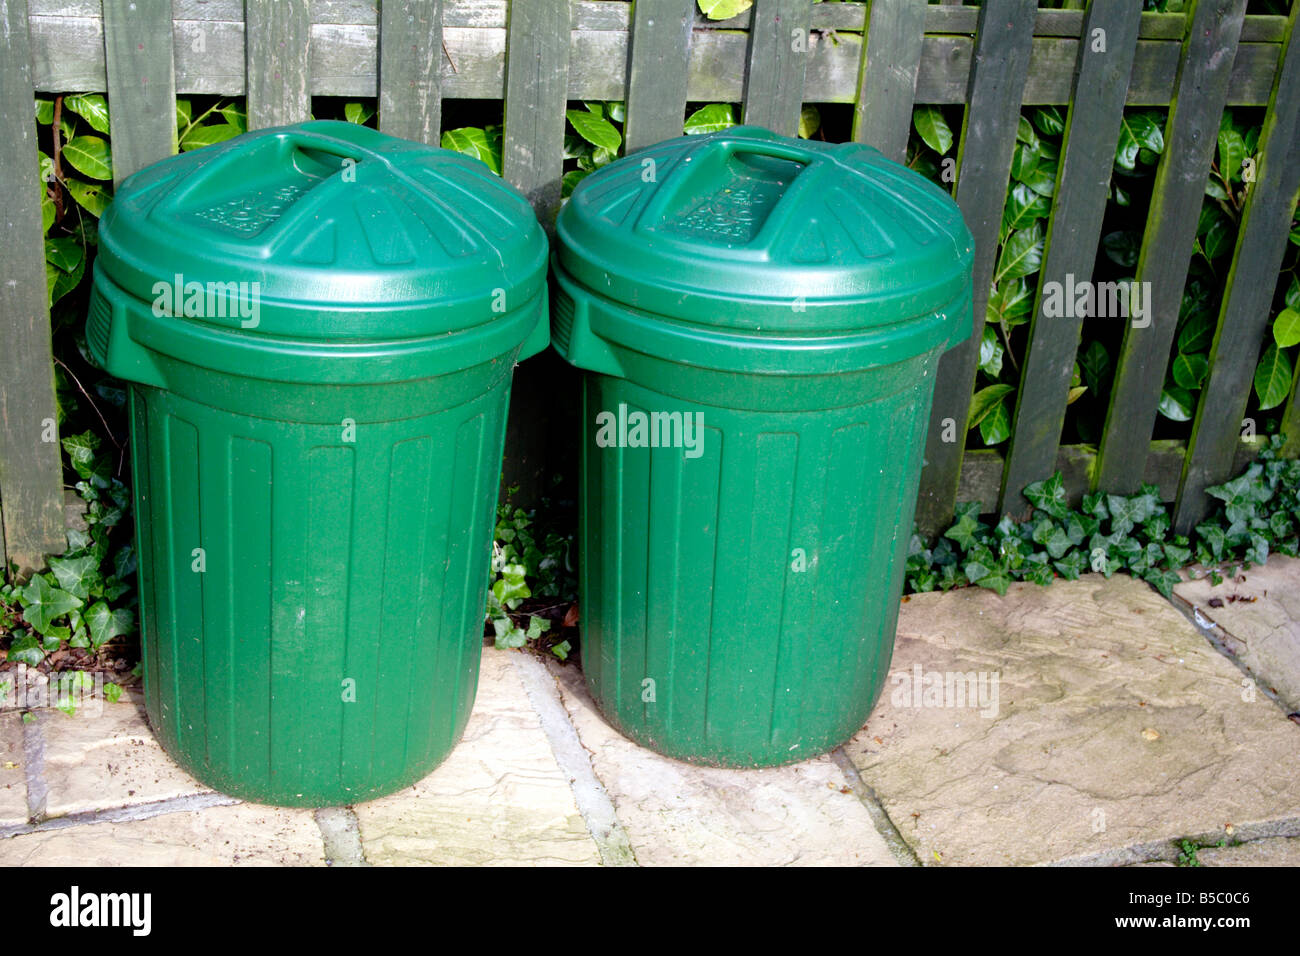 Two Dustbins Stock Photos & Two Dustbins Stock Images - Alamy